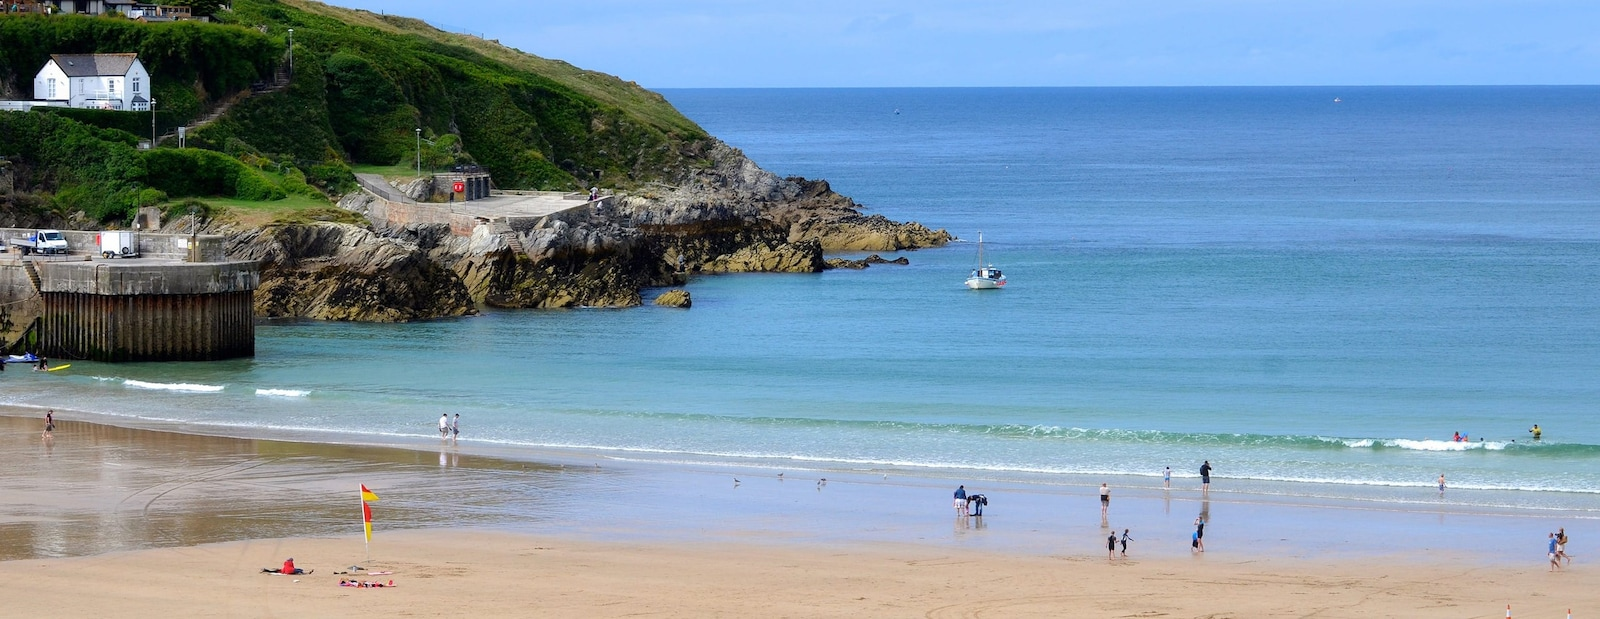 Vacation rentals in Polzeath